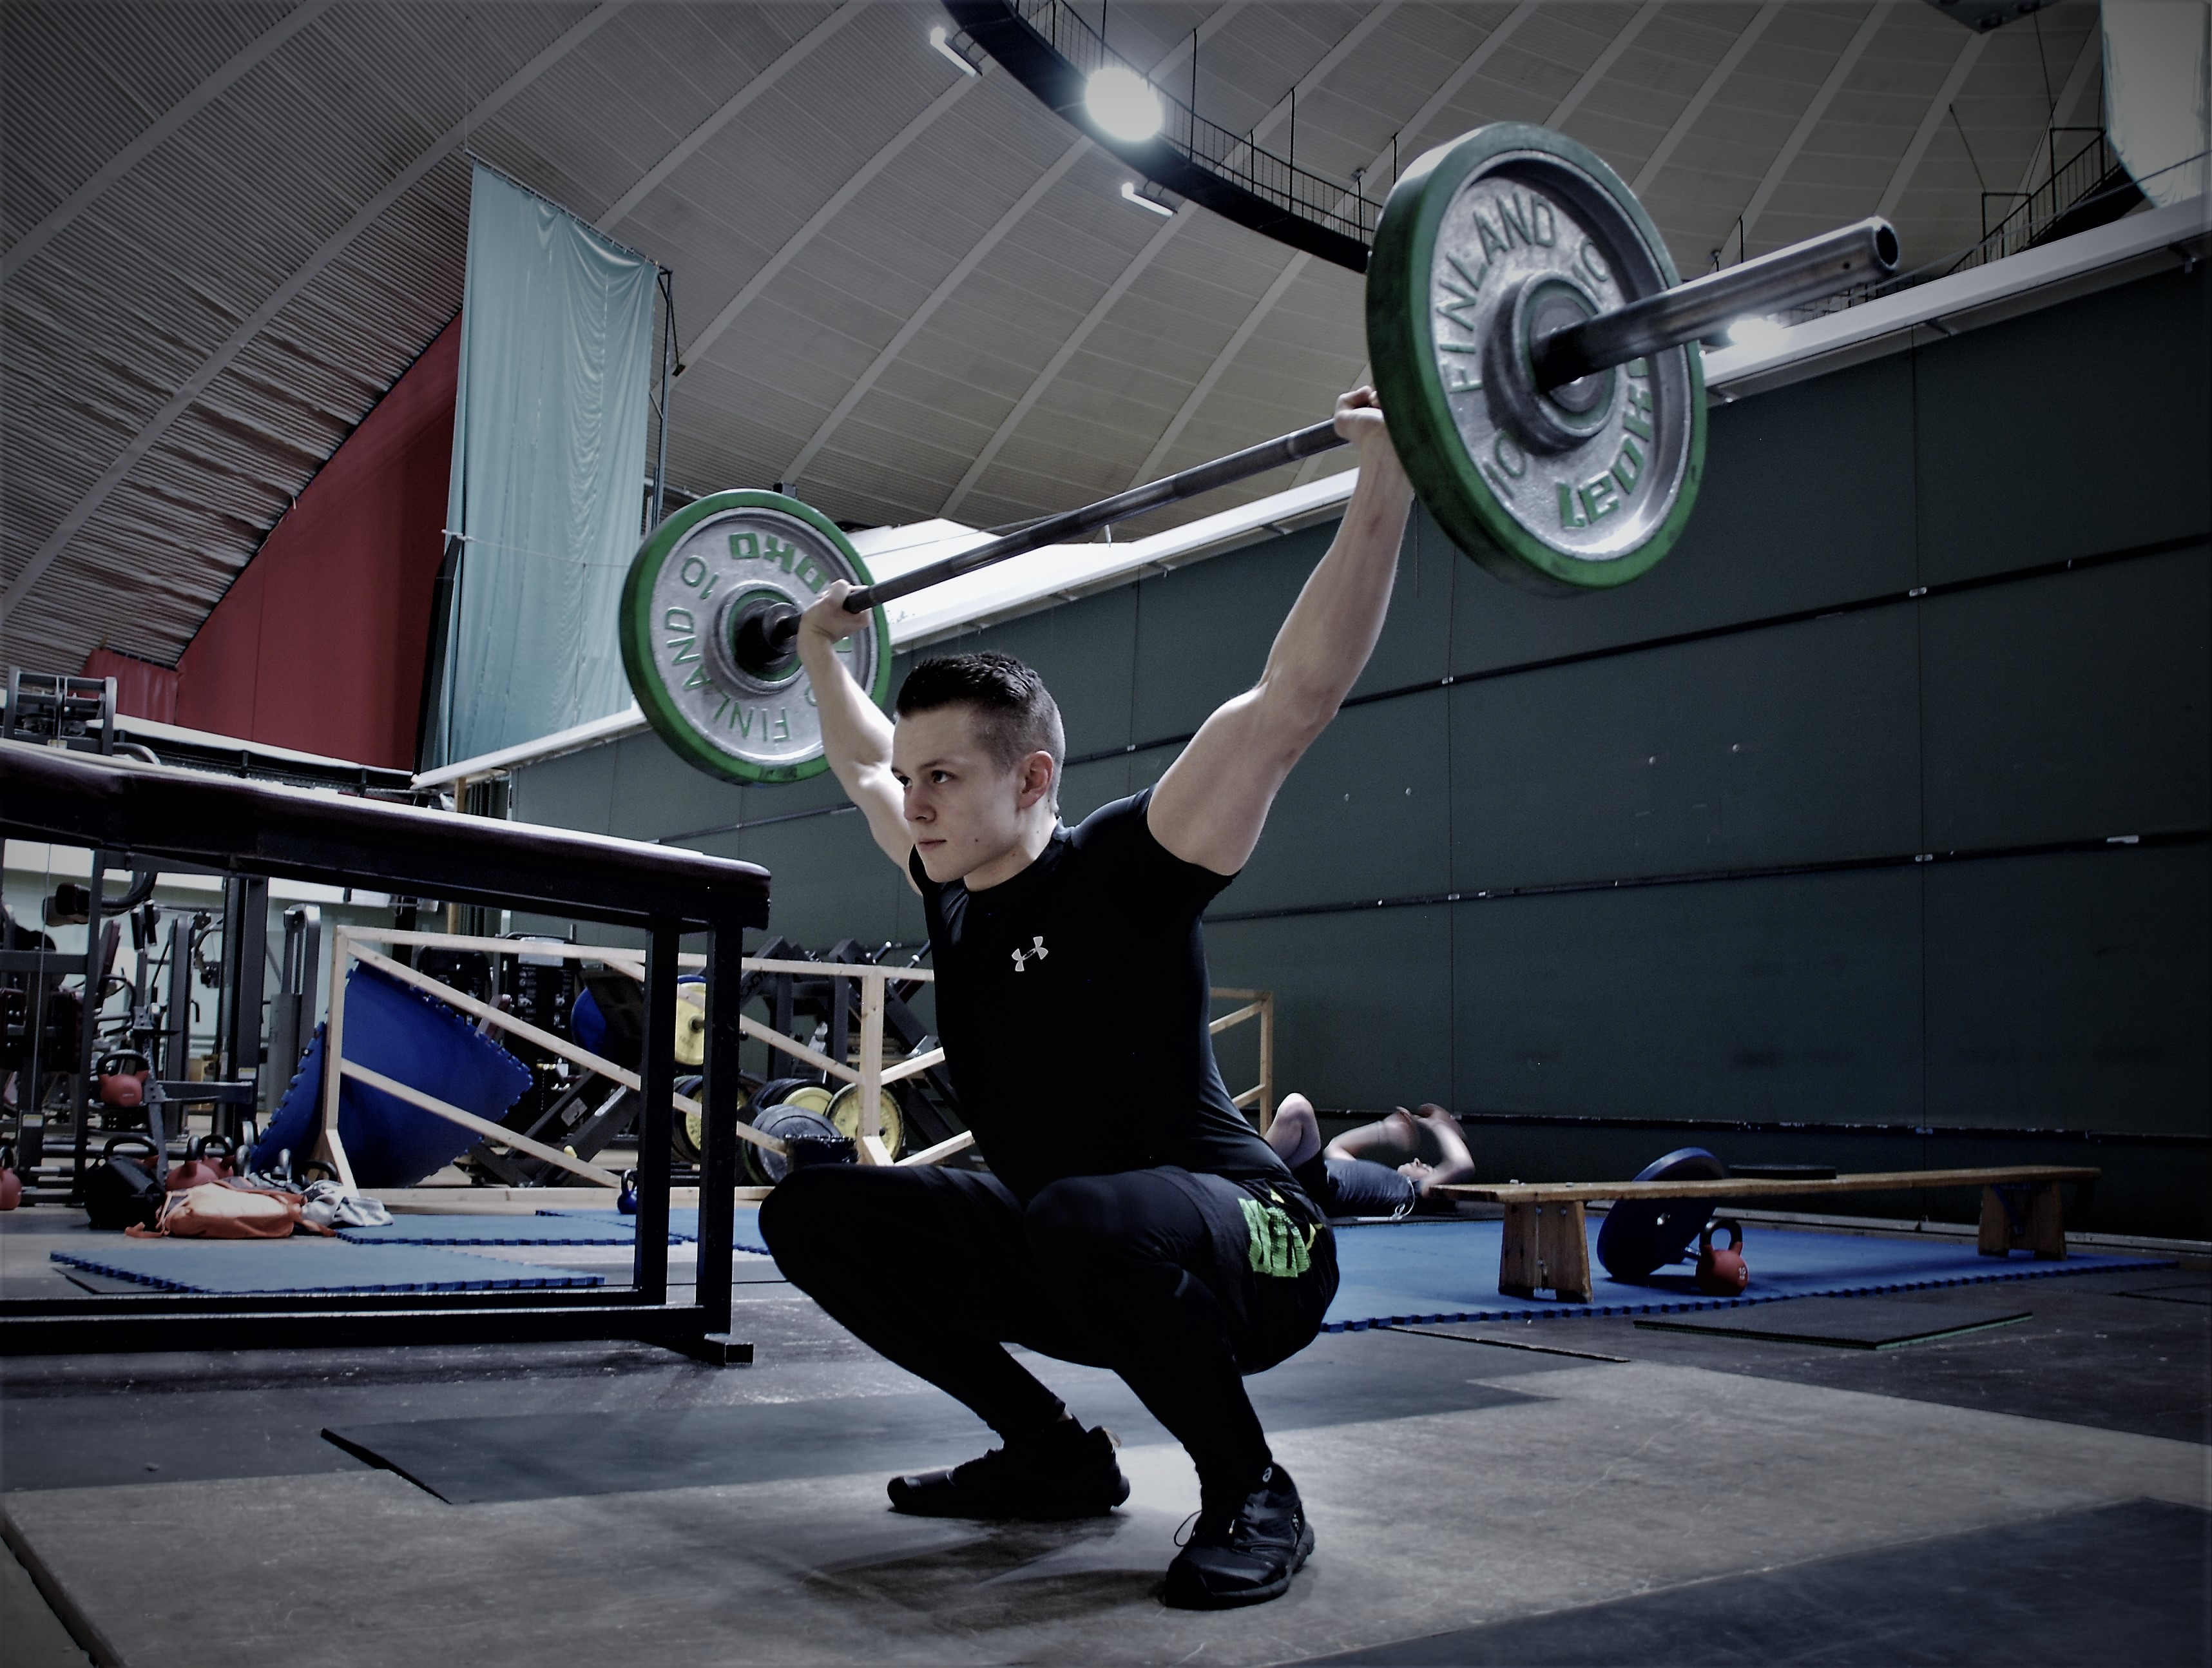 Personal Trainer Roope Rissanen